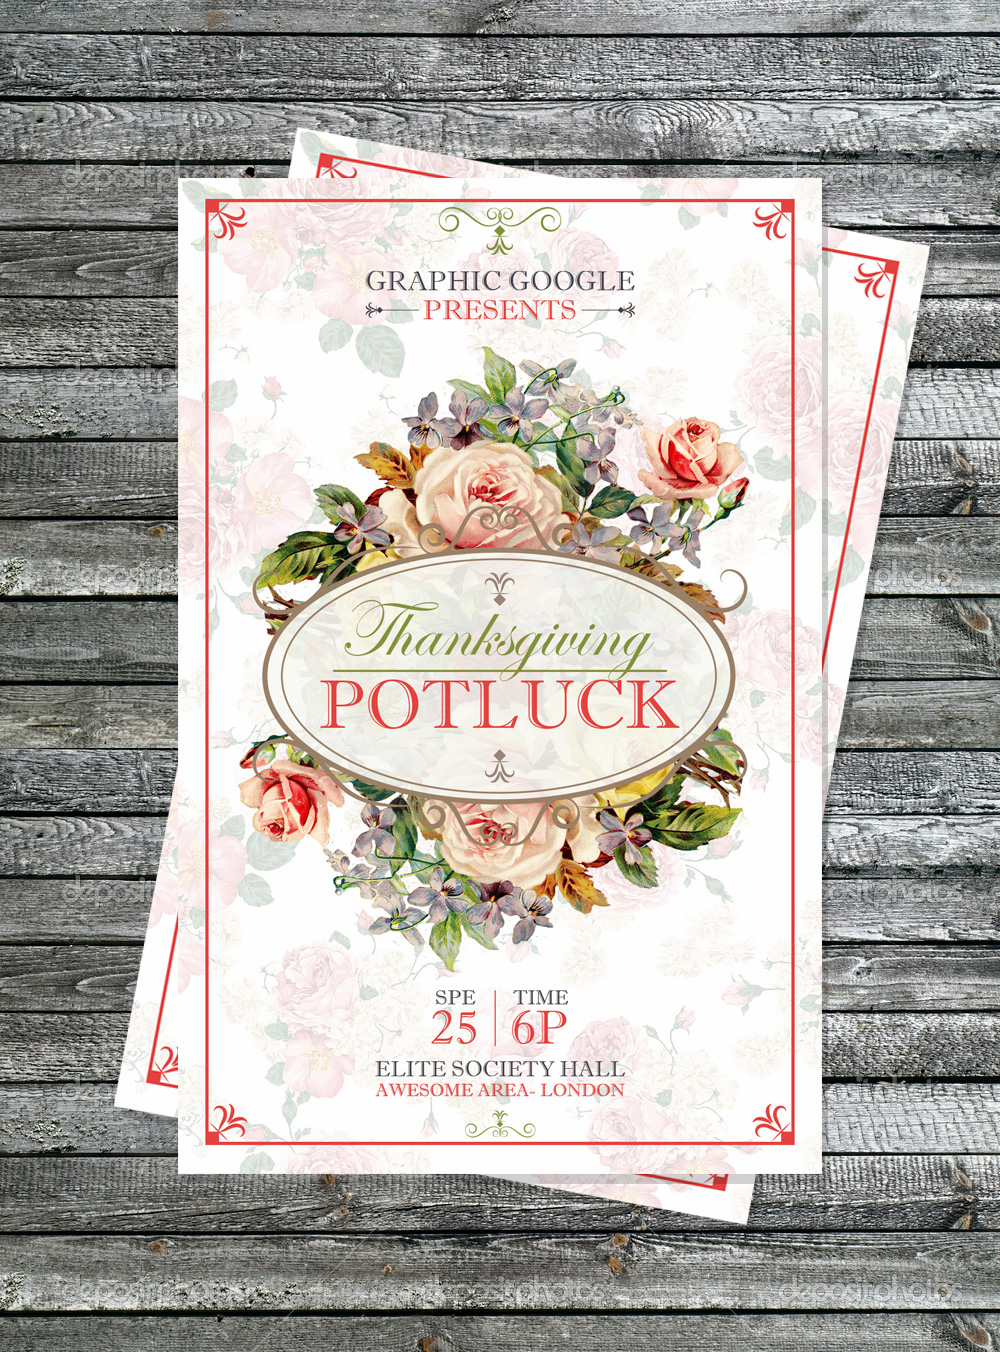 Potluck Thanksgiving Flyer